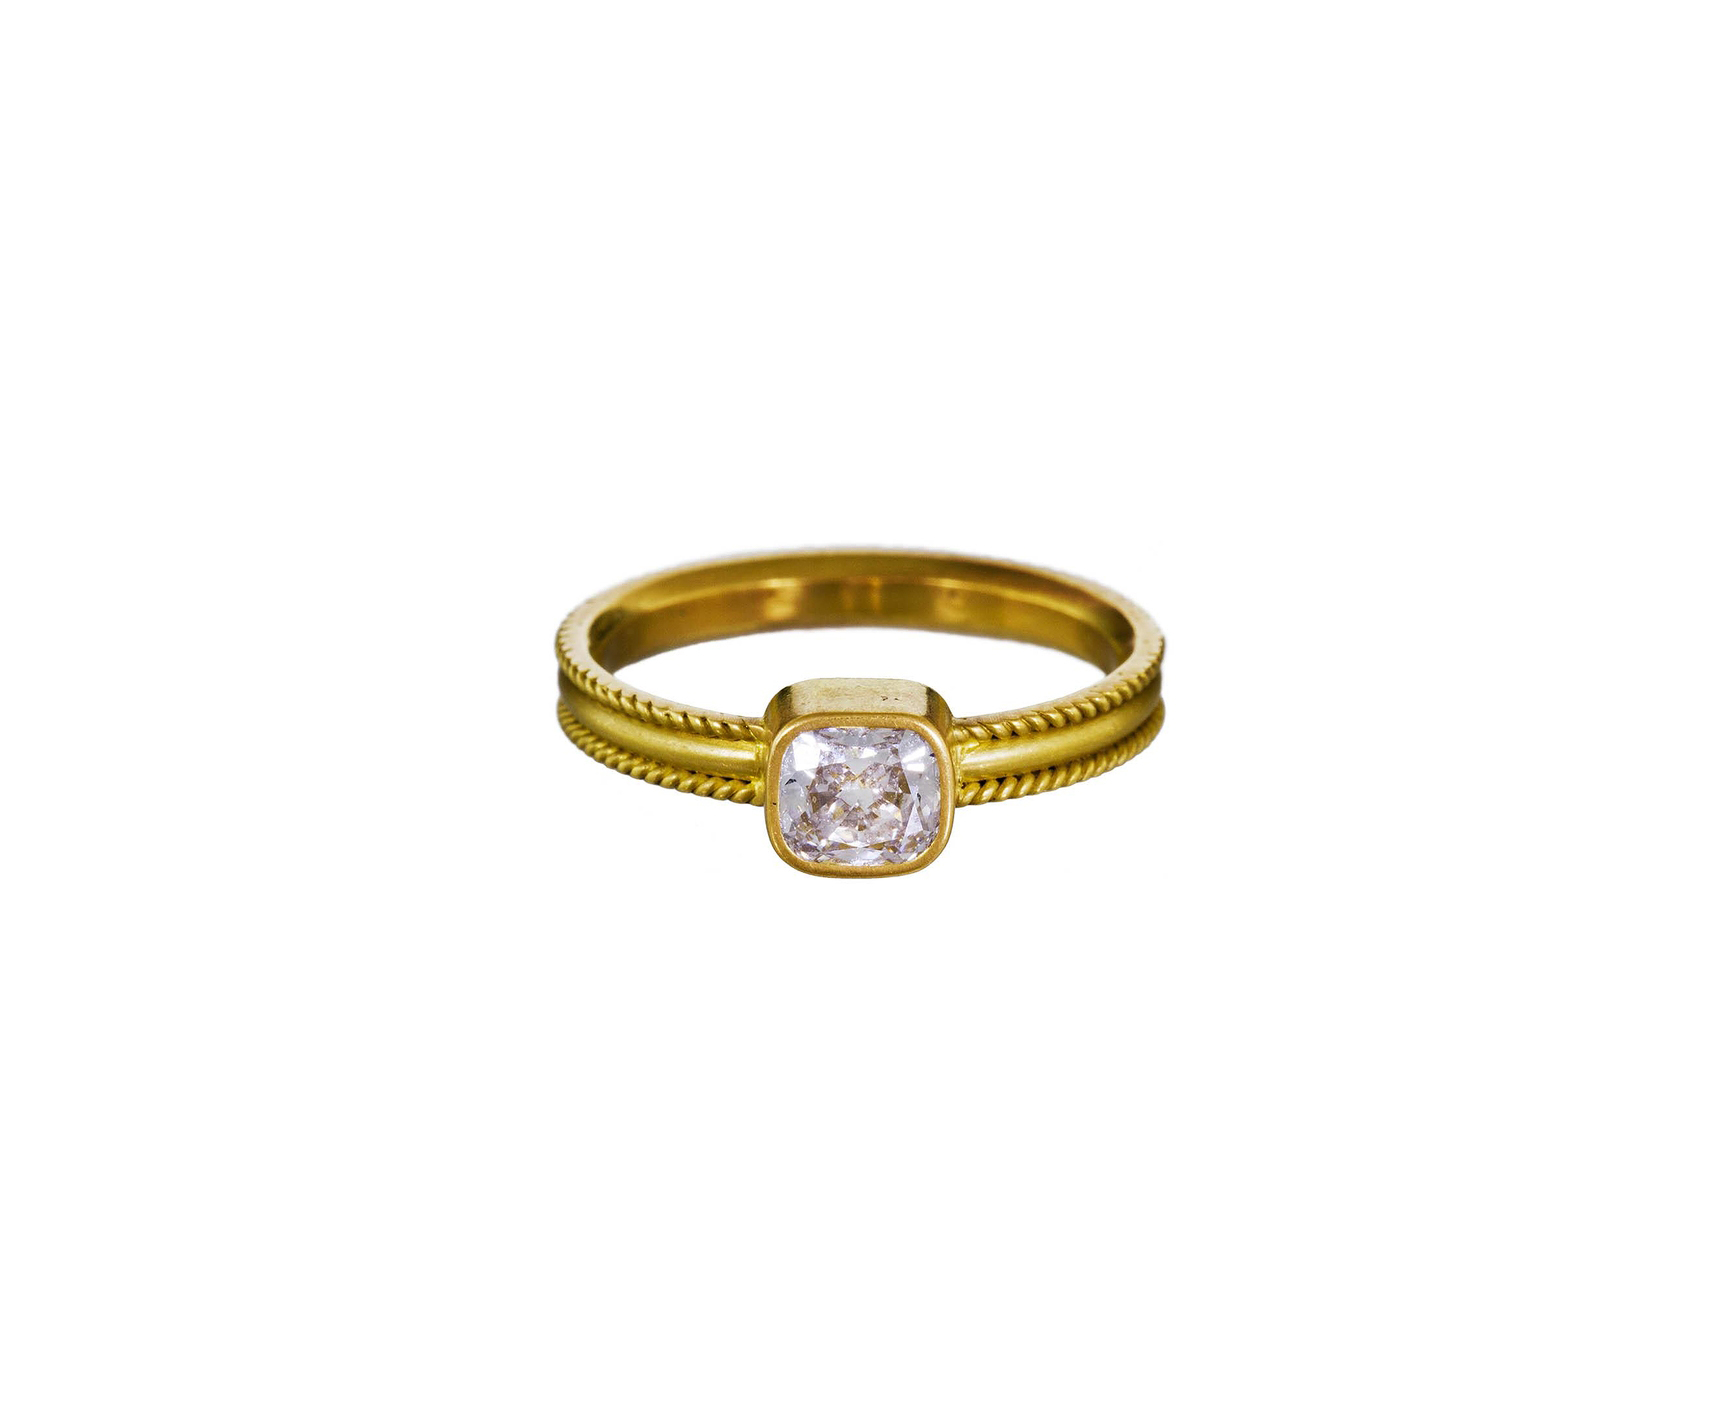 reinstein ross cushion cut diamond engagement ring gold band